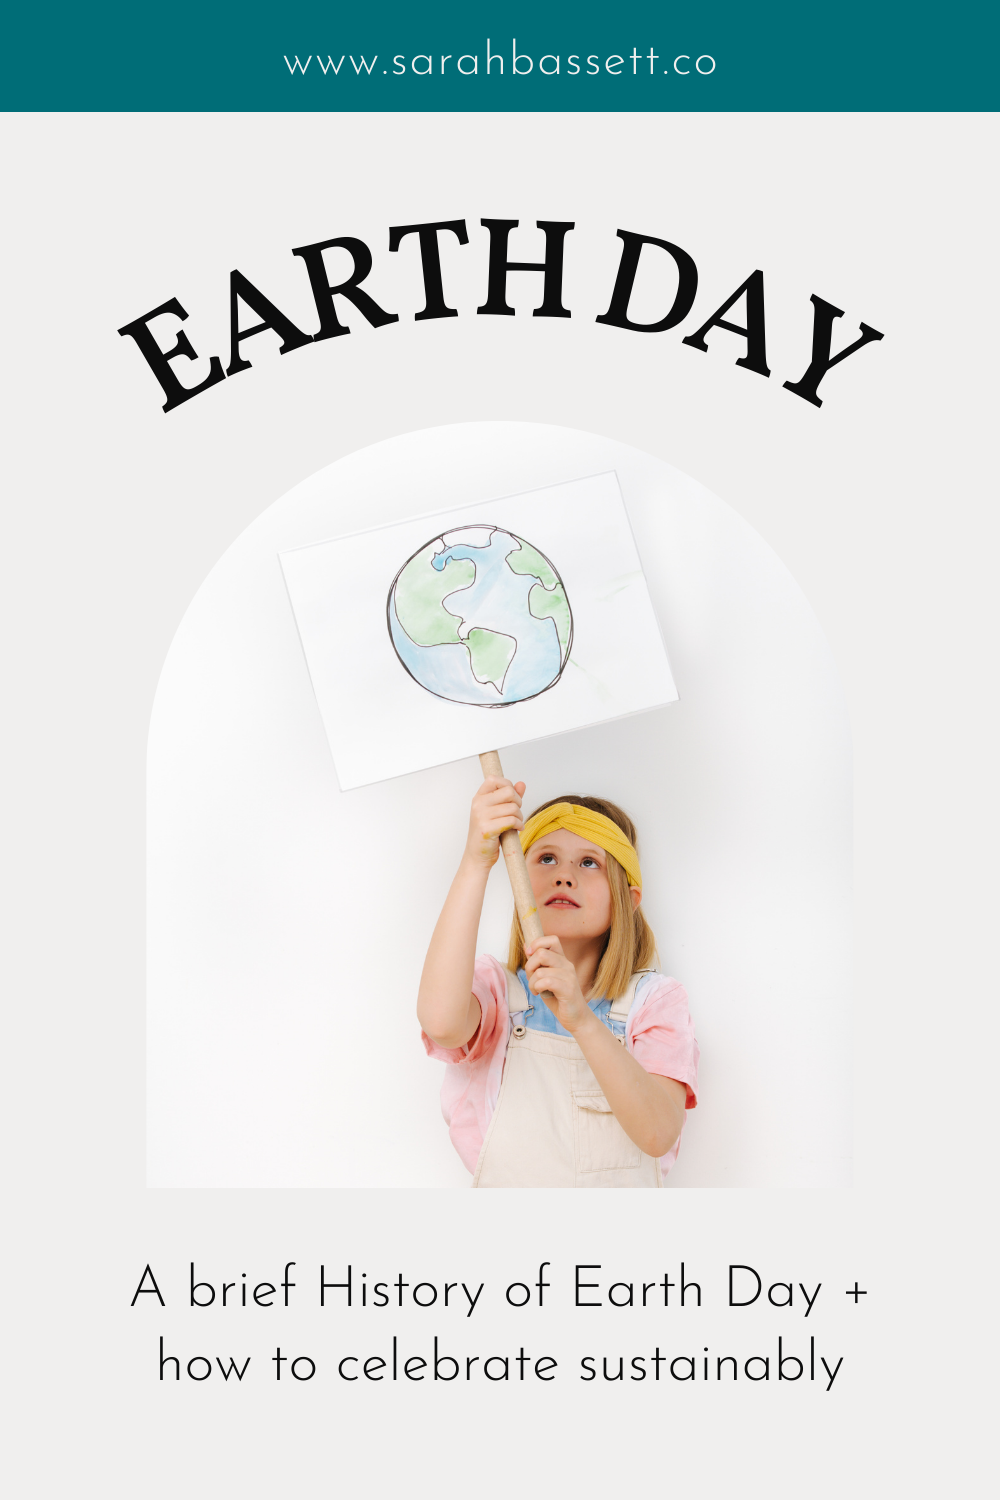 The history of Earth Day and how to celebrate it sustainably.  Earth Day is like Christmas for environmentalists. Find out the history of earth day and what you can do to make an eco-friendly and sustainable difference